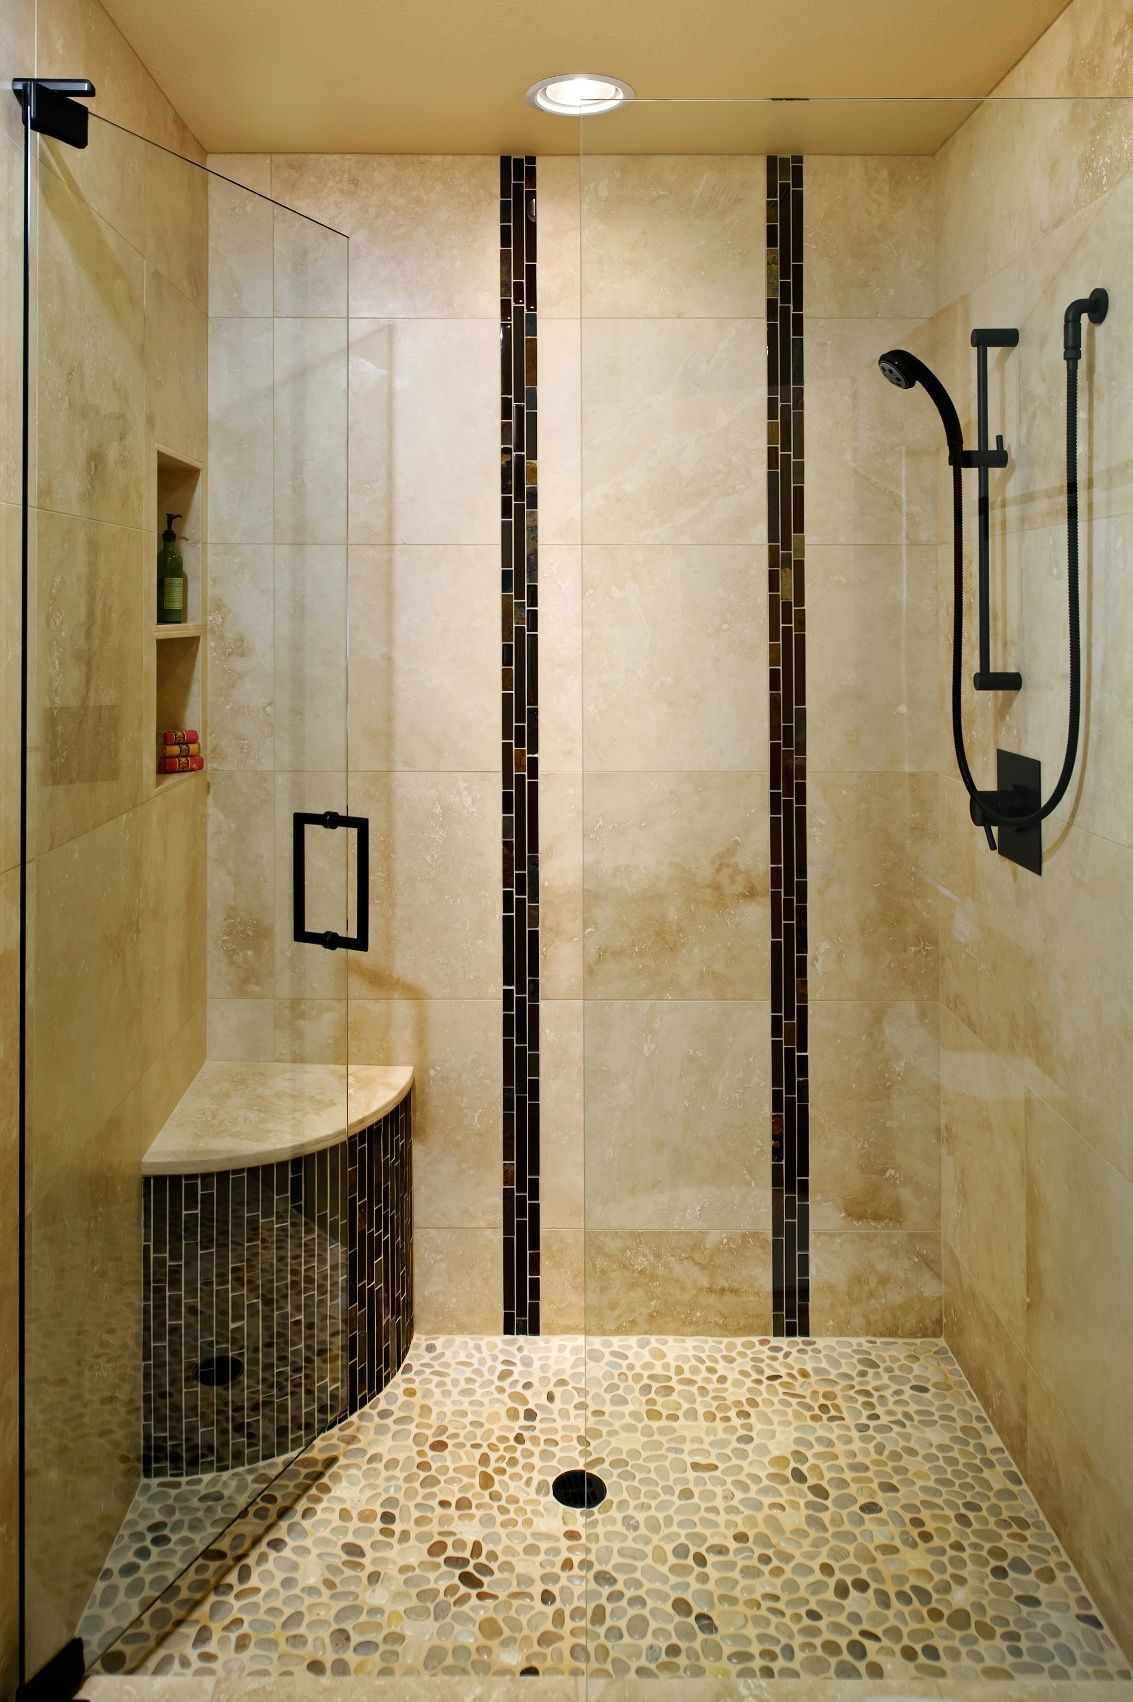 Small Bathroom Design Ideas With Shower Part - 25: Bathroom Bathroom Remodeling Ideas To Remodel A Small Bathroom For Mobile  Home Kitchen Remodel Ideas Mobile Home Kitchen Remodel Ideas